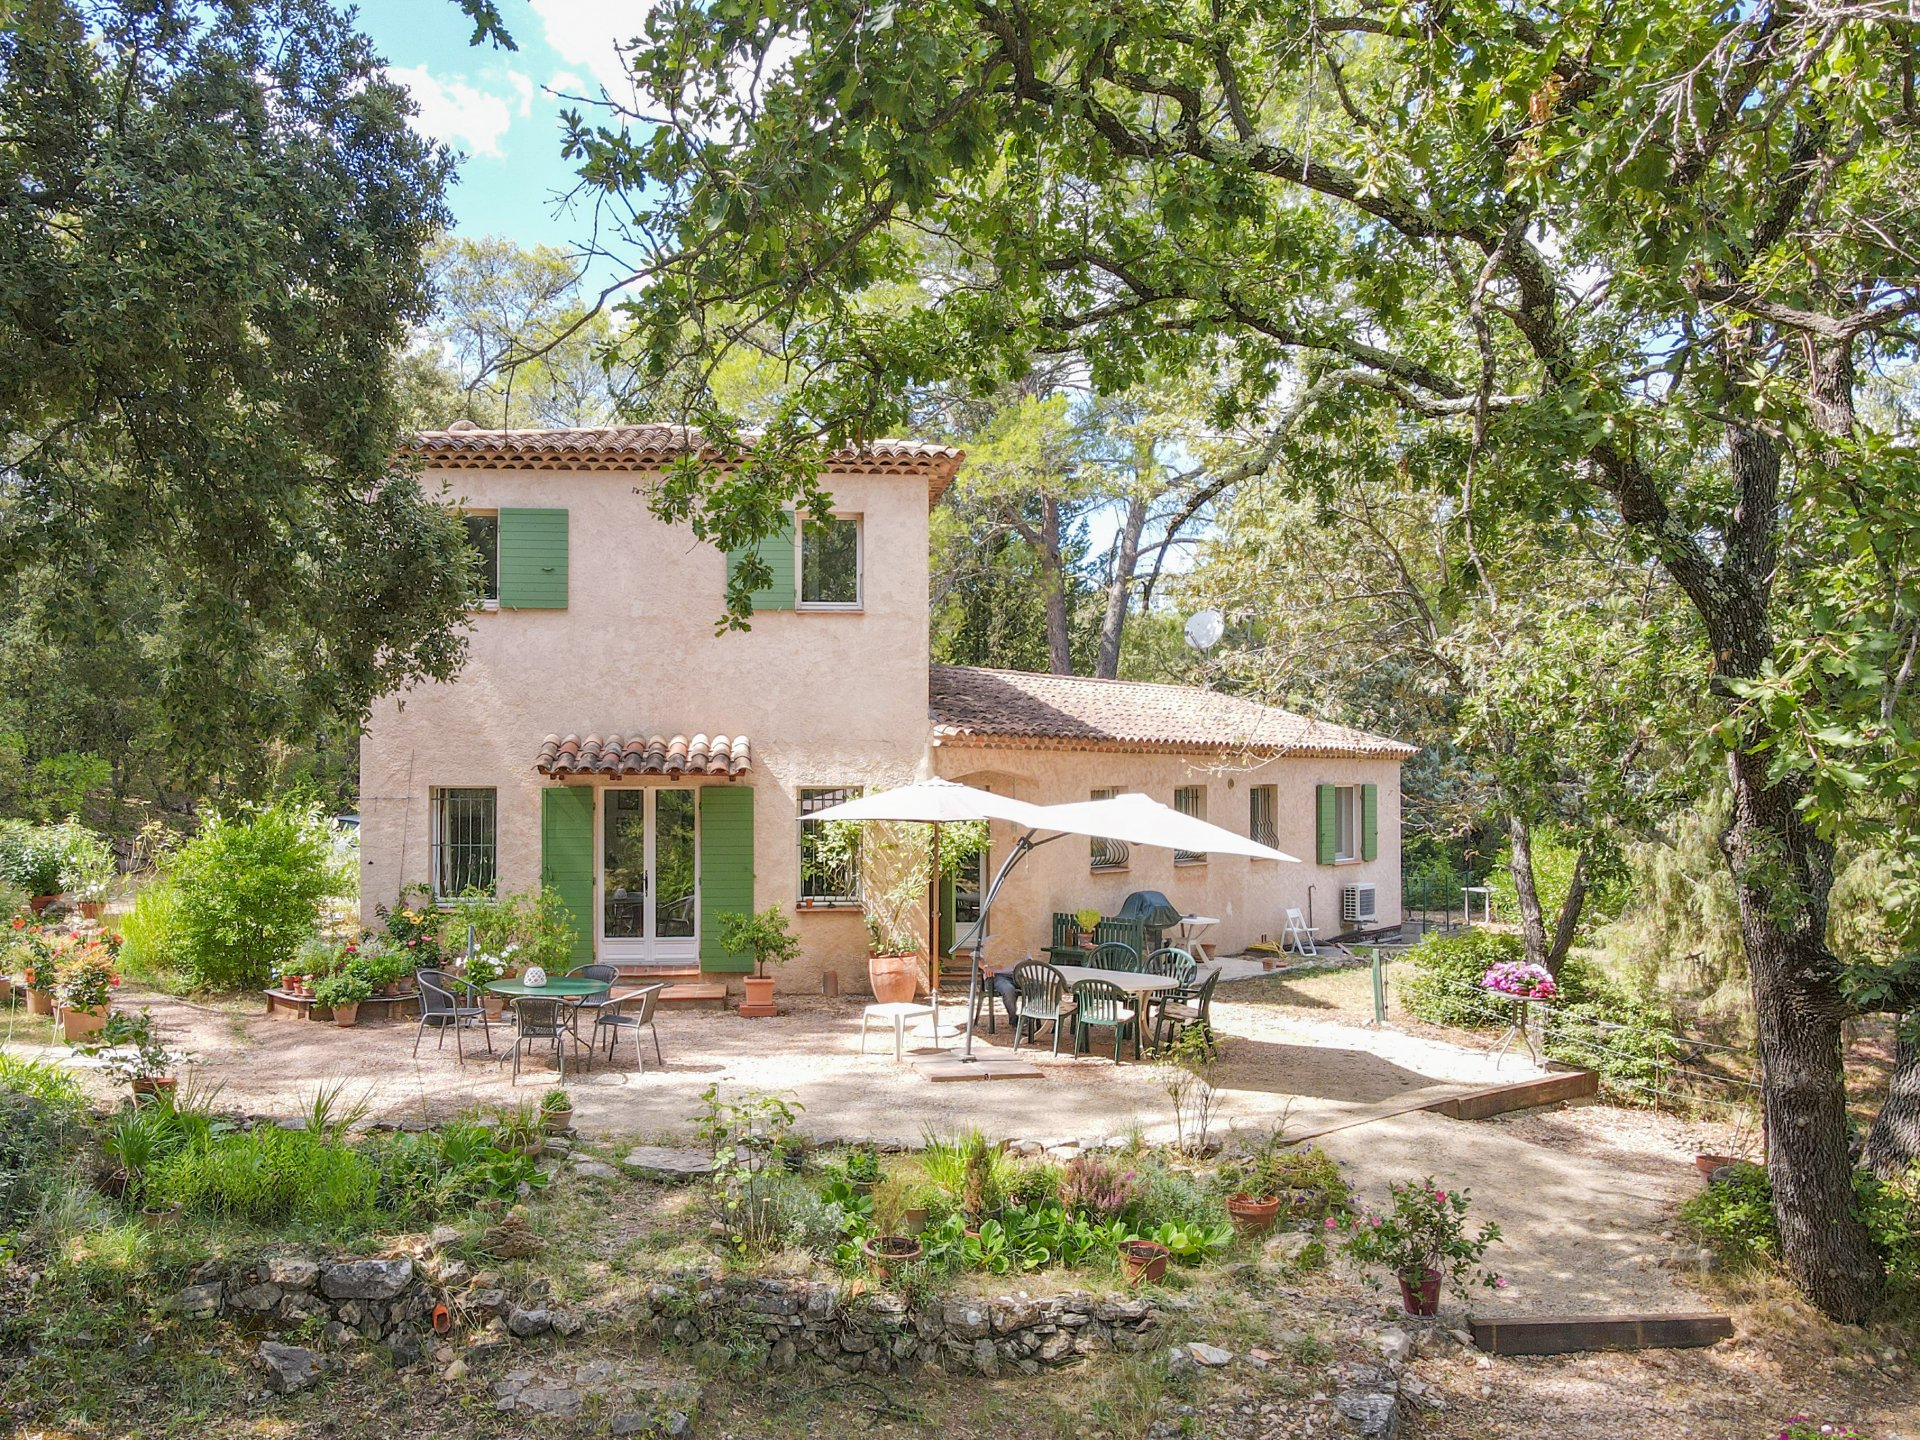 Charming Provencal house with swimming pool, only 3 km from Lorgues